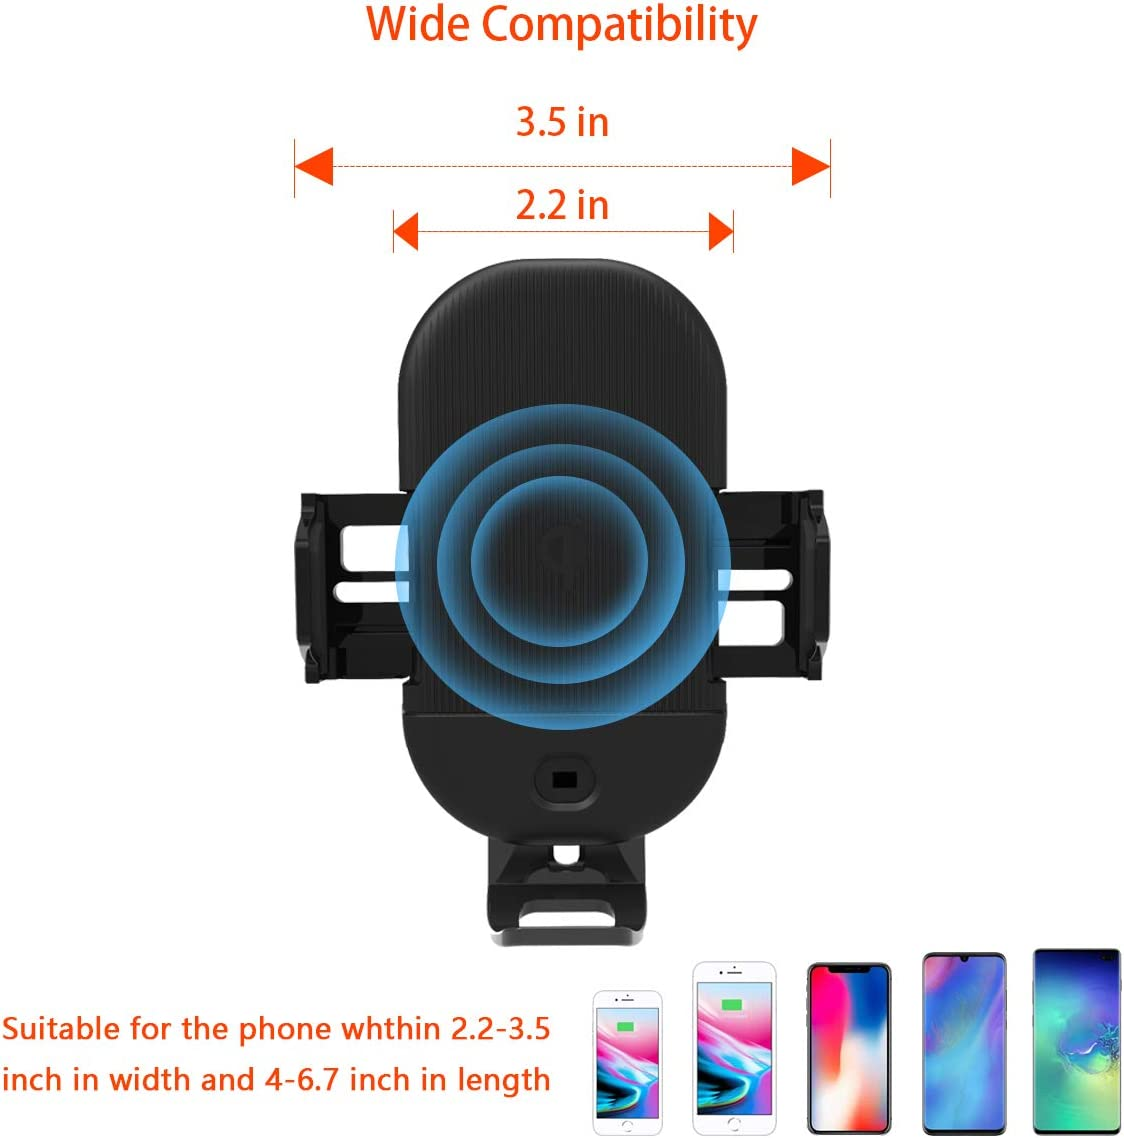 Samsung S10//S10+//S9//Note 9 and More Wireless Car Charger Mount Automatic Clamping 7.5W //10W Fast Charge Qi Car Phone Holder Air Vent Dashboard Compatible for iPhone Xs Max//XR//X//8//8 Plus